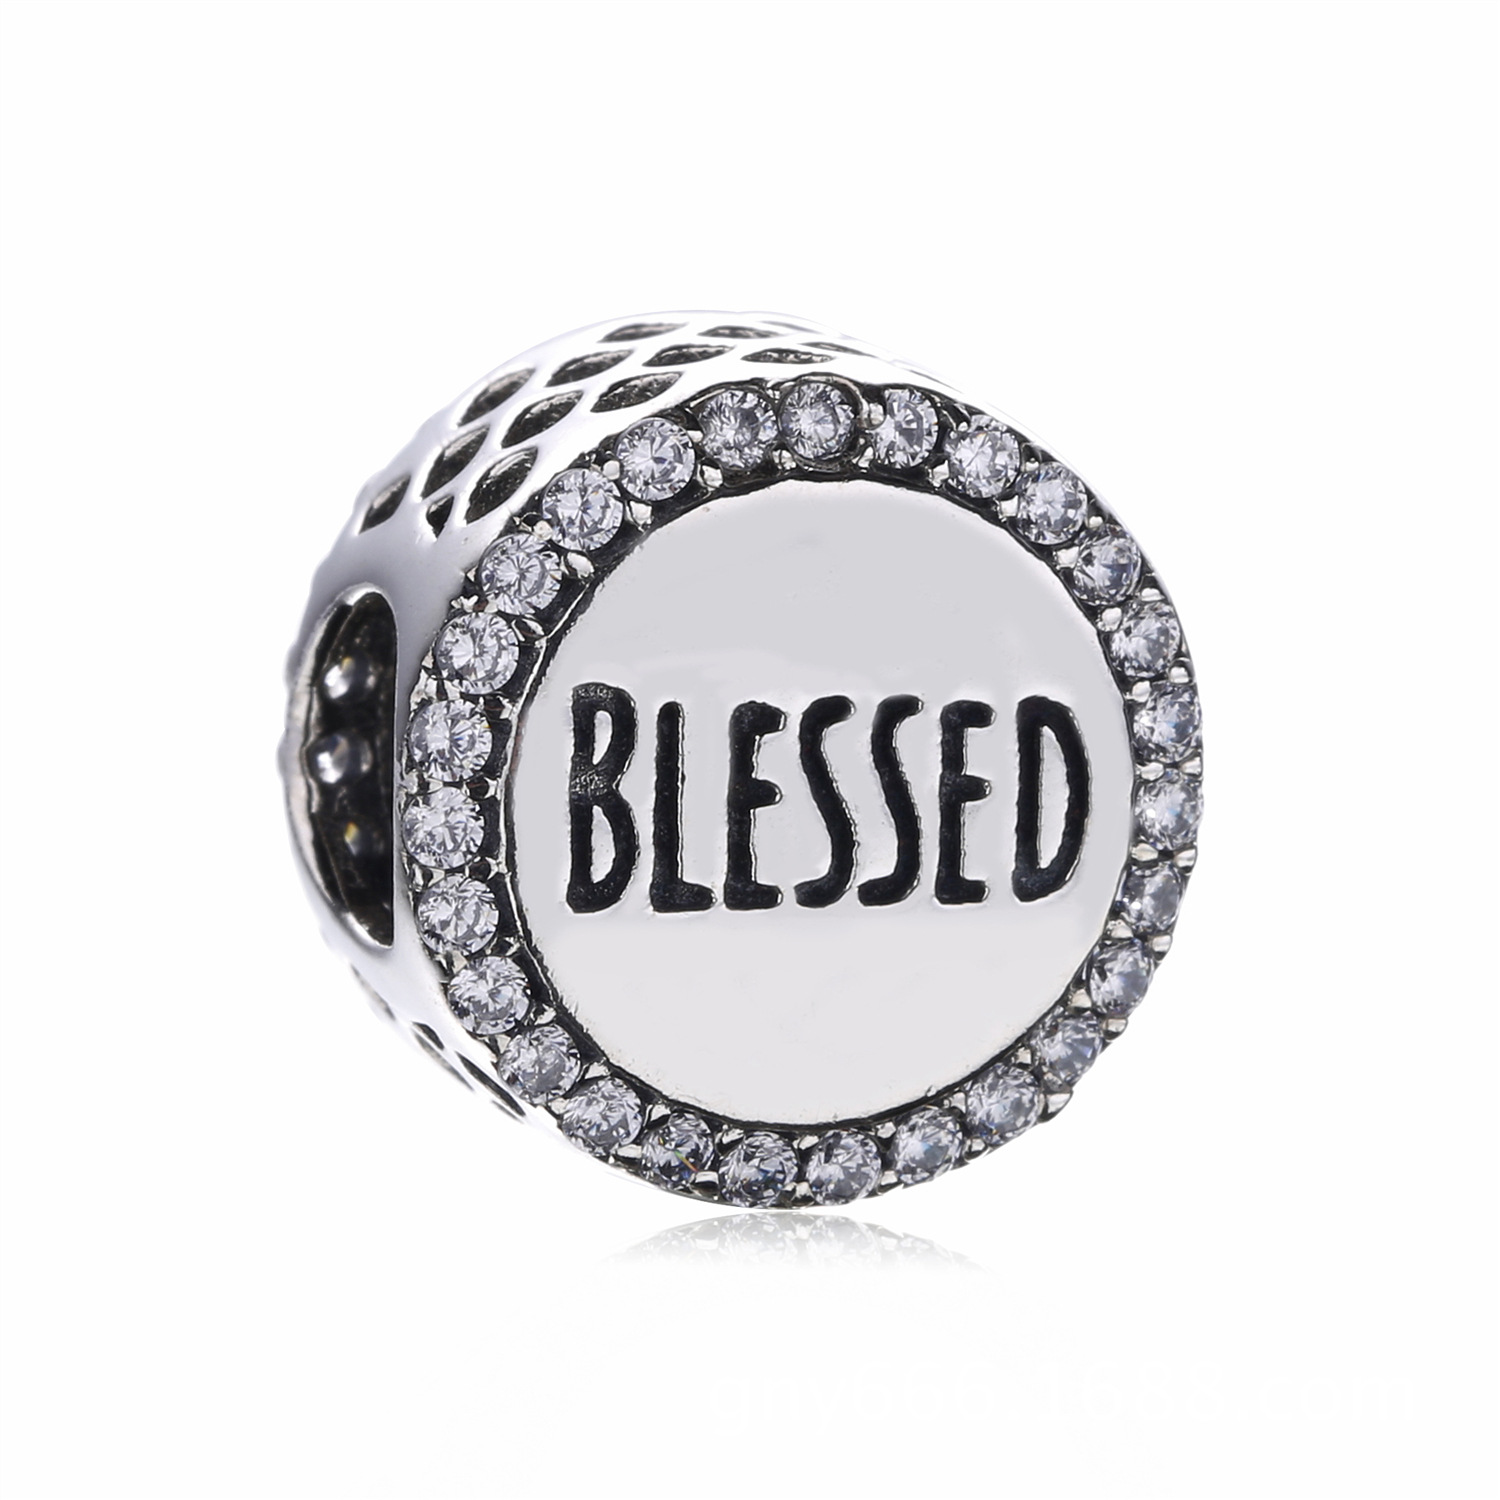 925 Sterling Silver BLESSED Charms Beads With Clear CZ Fits Original Pandora Charm Bracelet DIY Jewelry Gift For Family